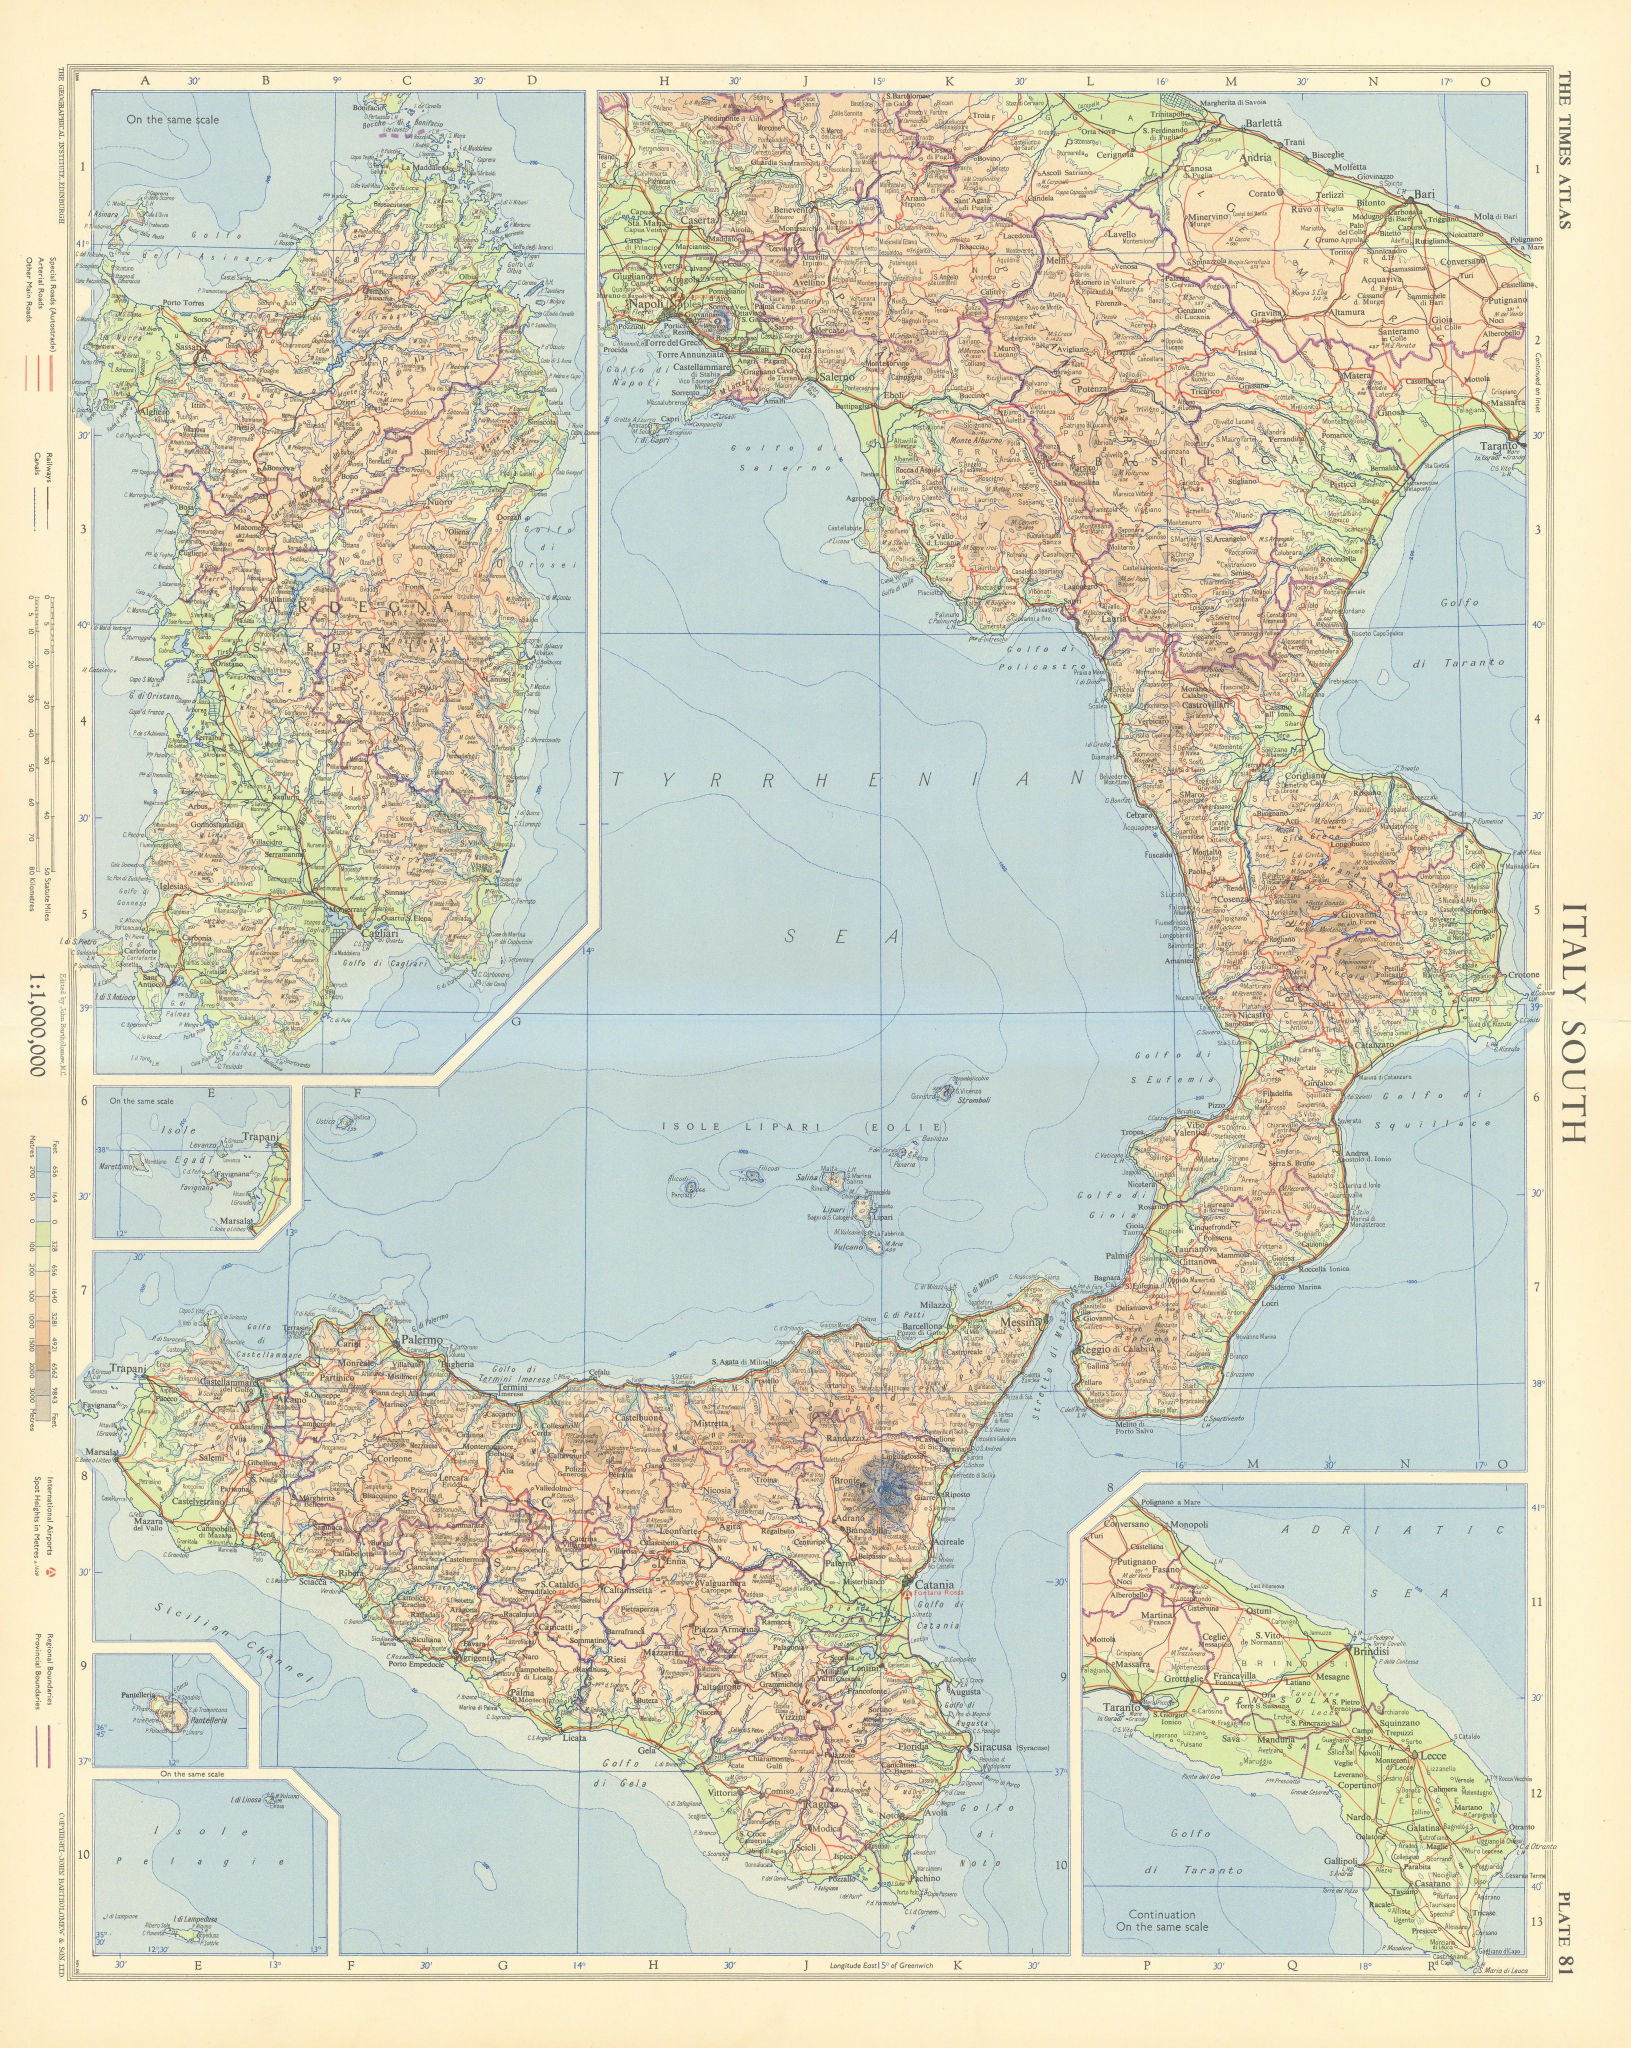 Italy south. Road network. Autostrade. TIMES 1956 old vintage map plan chart